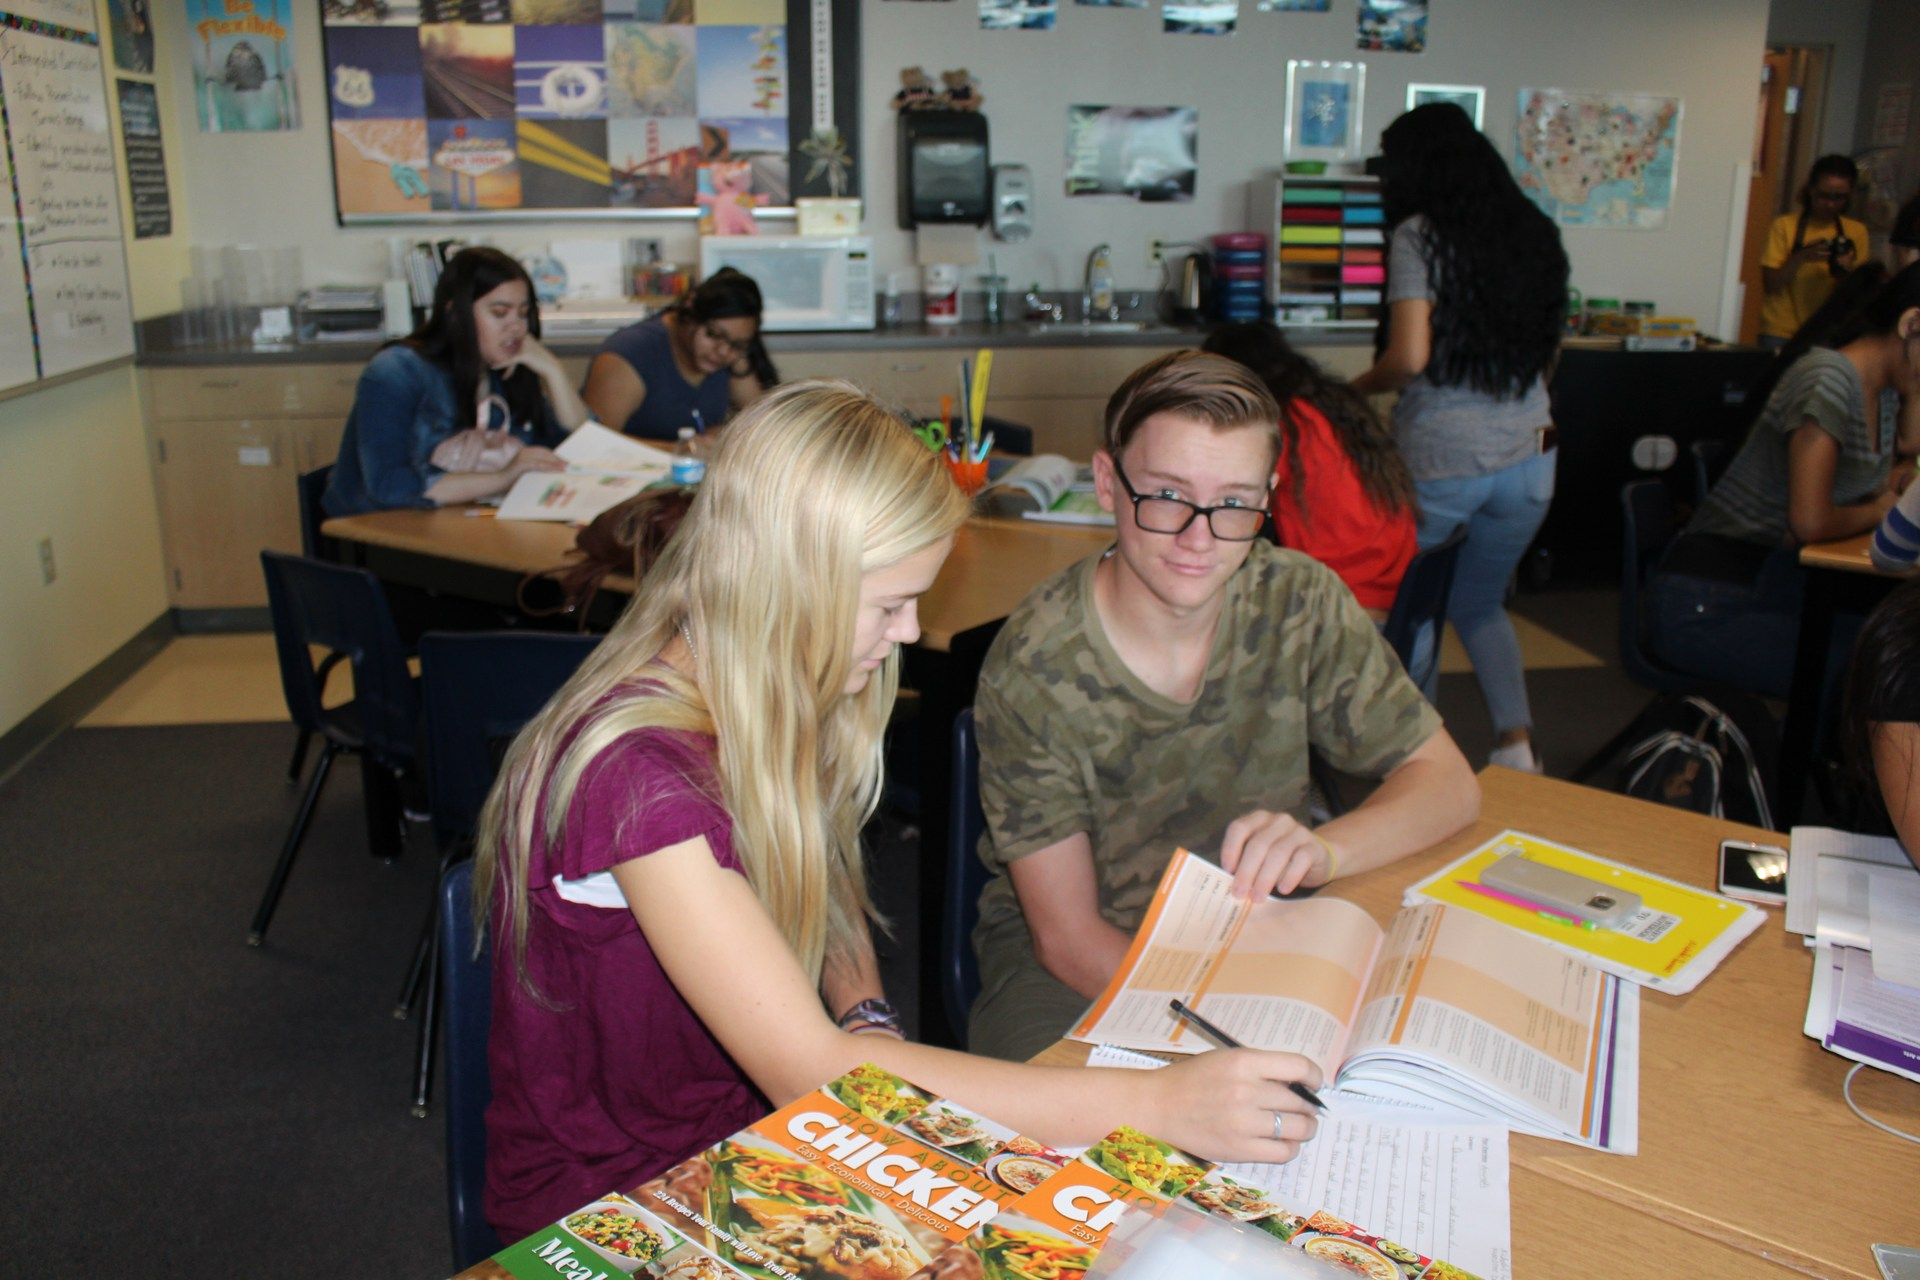 Two students working on the assignment